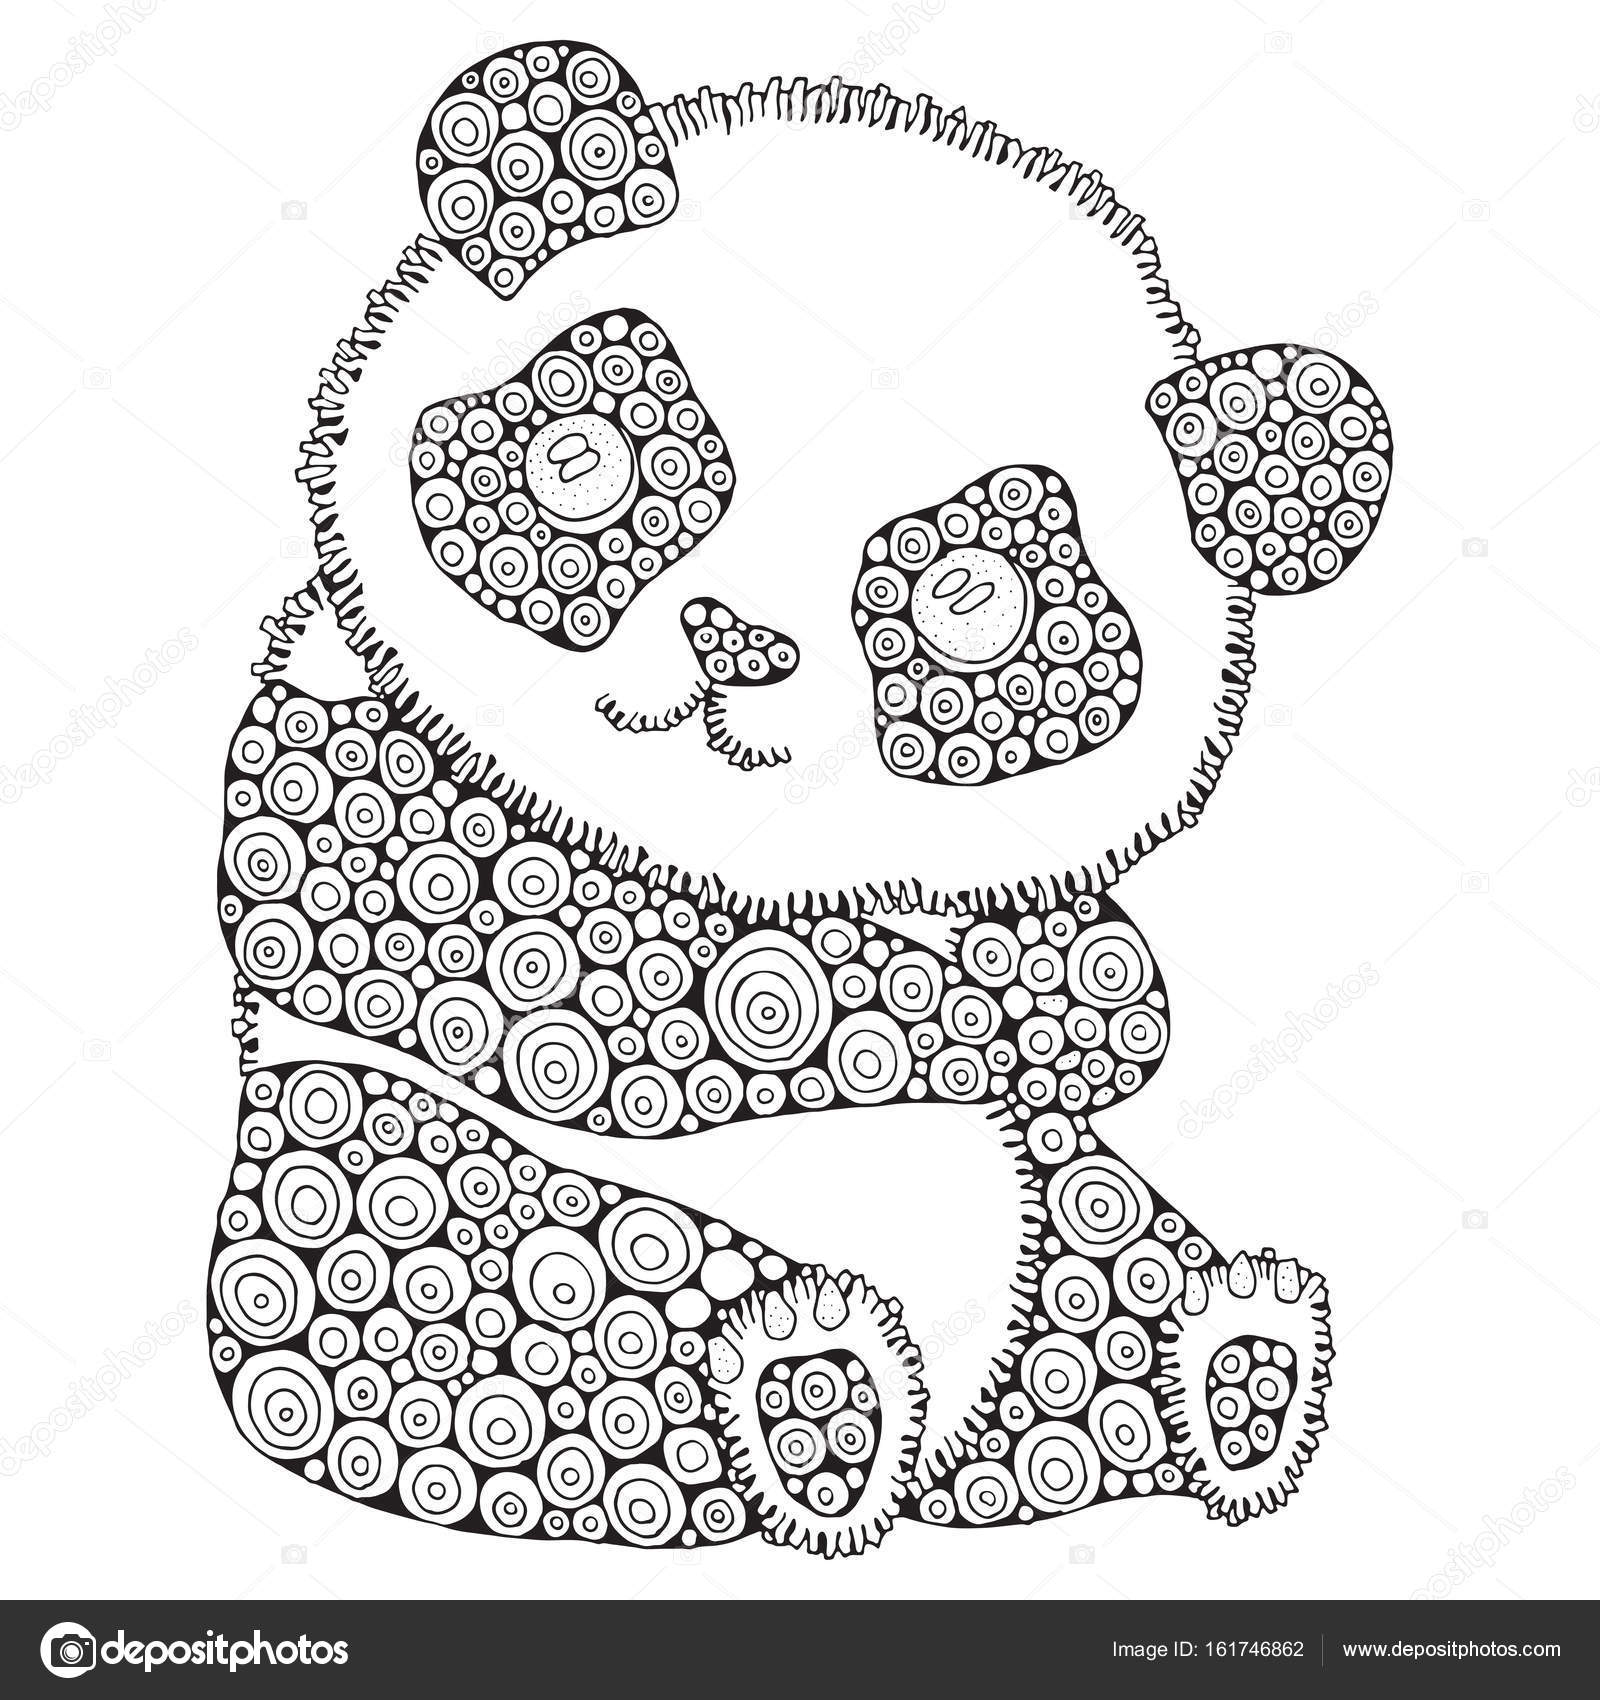 978595d3d9a92 Cute panda. Adult antistress coloring book page. Black and white. Zentangle  style. Hand drawn, doodle, zentangle design elements — Vector by  imhope.yandex. ...